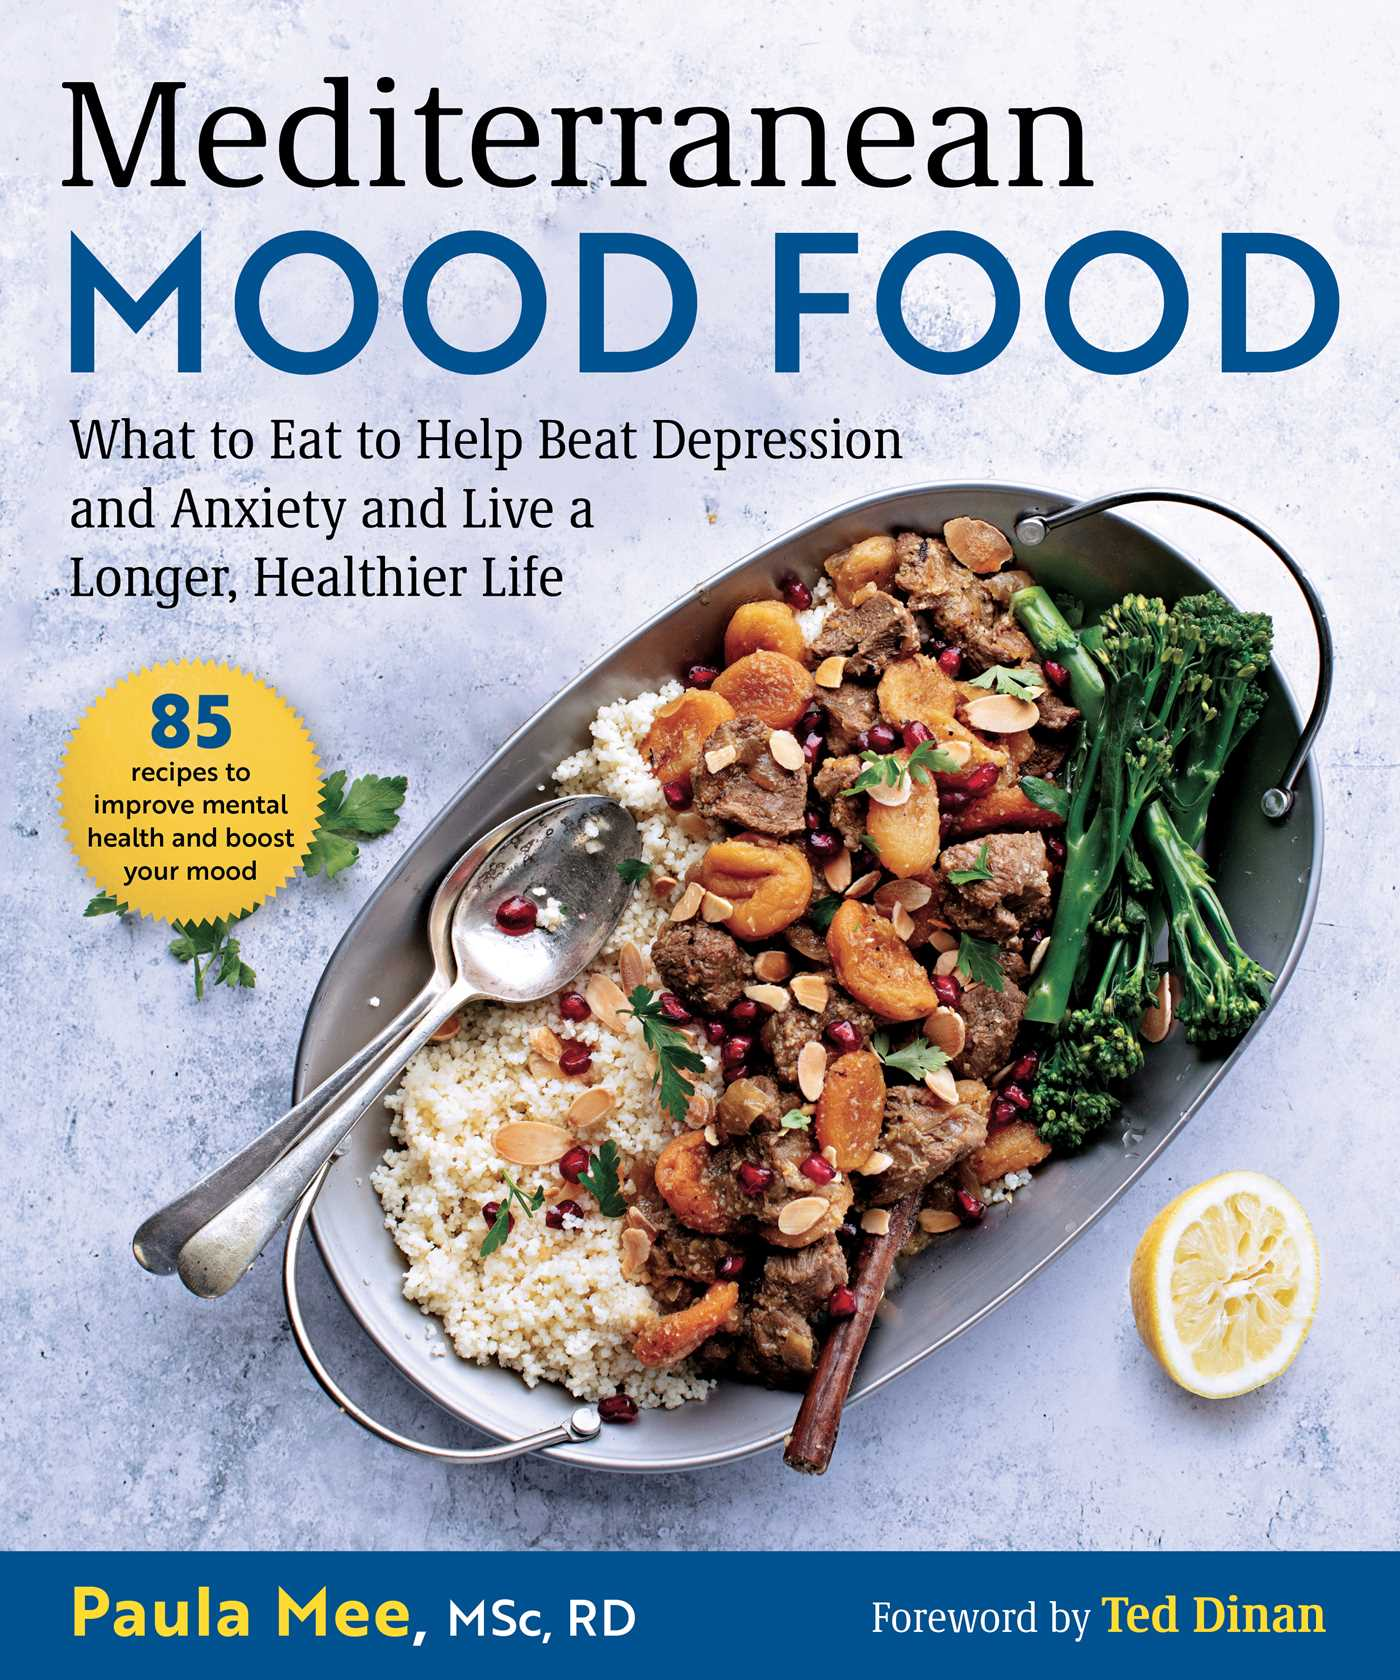 [PDF] [EPUB] Mediterranean Mood Food: What to Eat to Help Beat Depression and Anxiety and Live a Longer, Healthier Life Download by Paula Mee